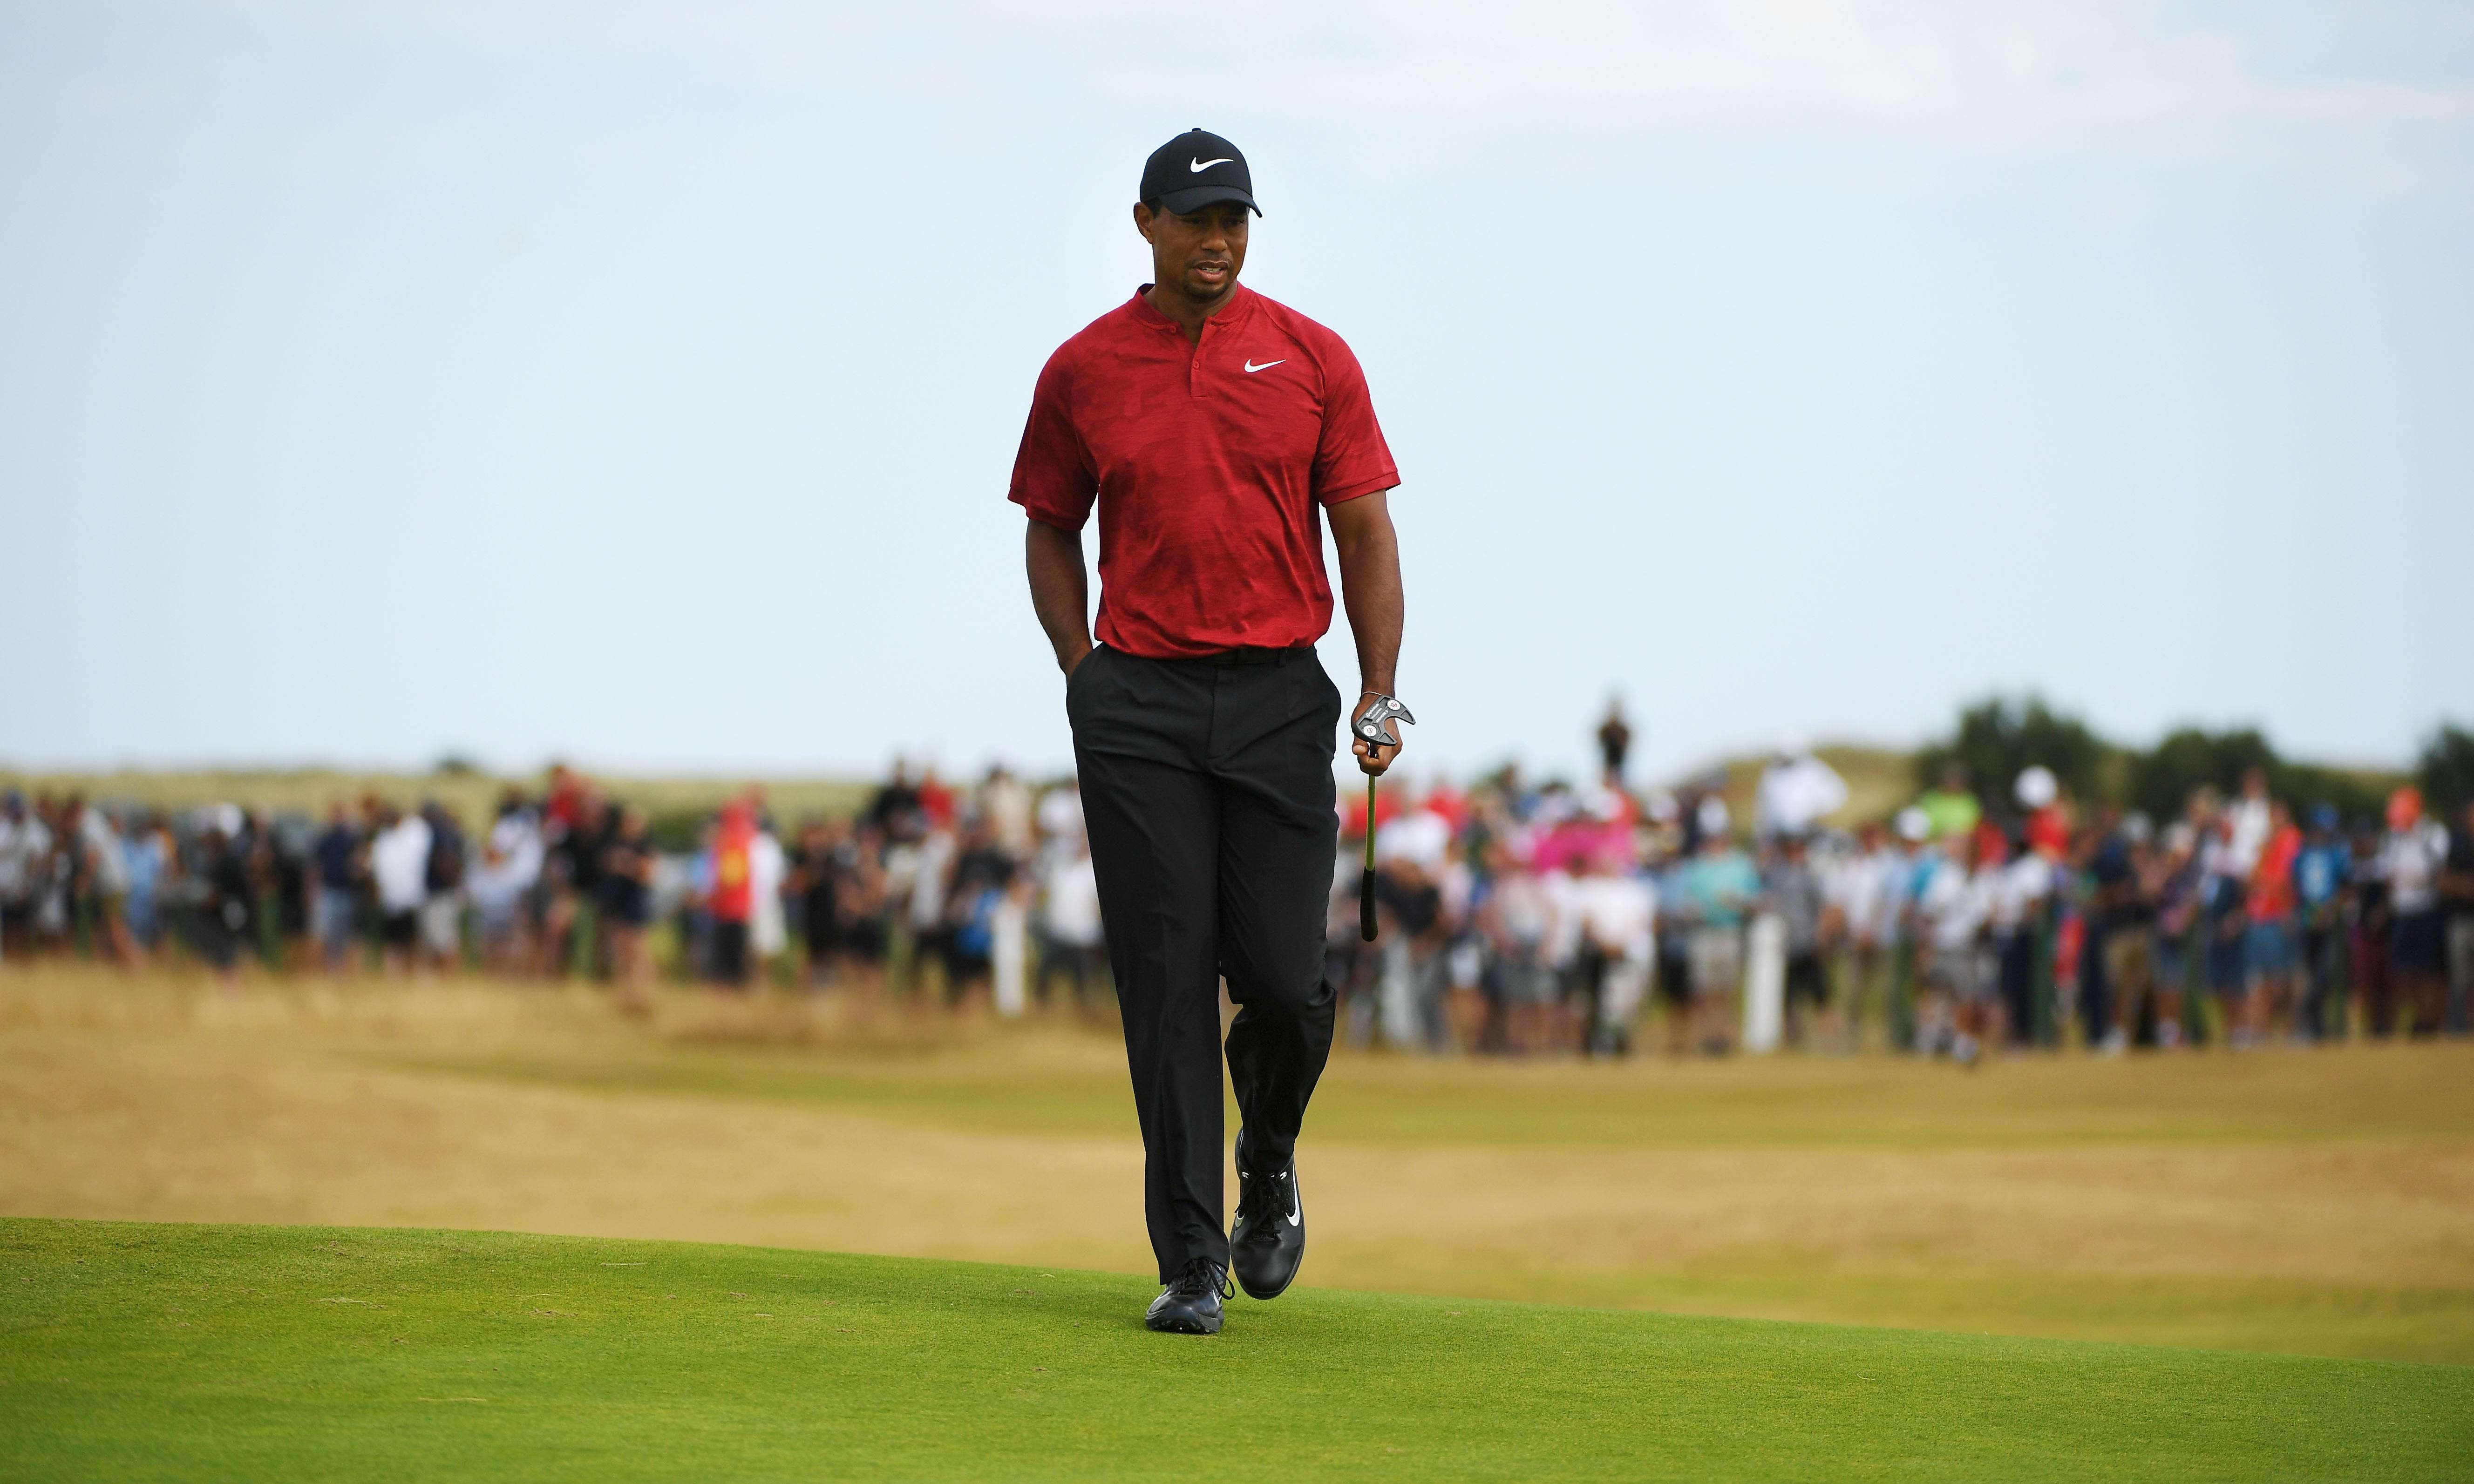 Time to follow golf's surprising lead and find different ways to be green